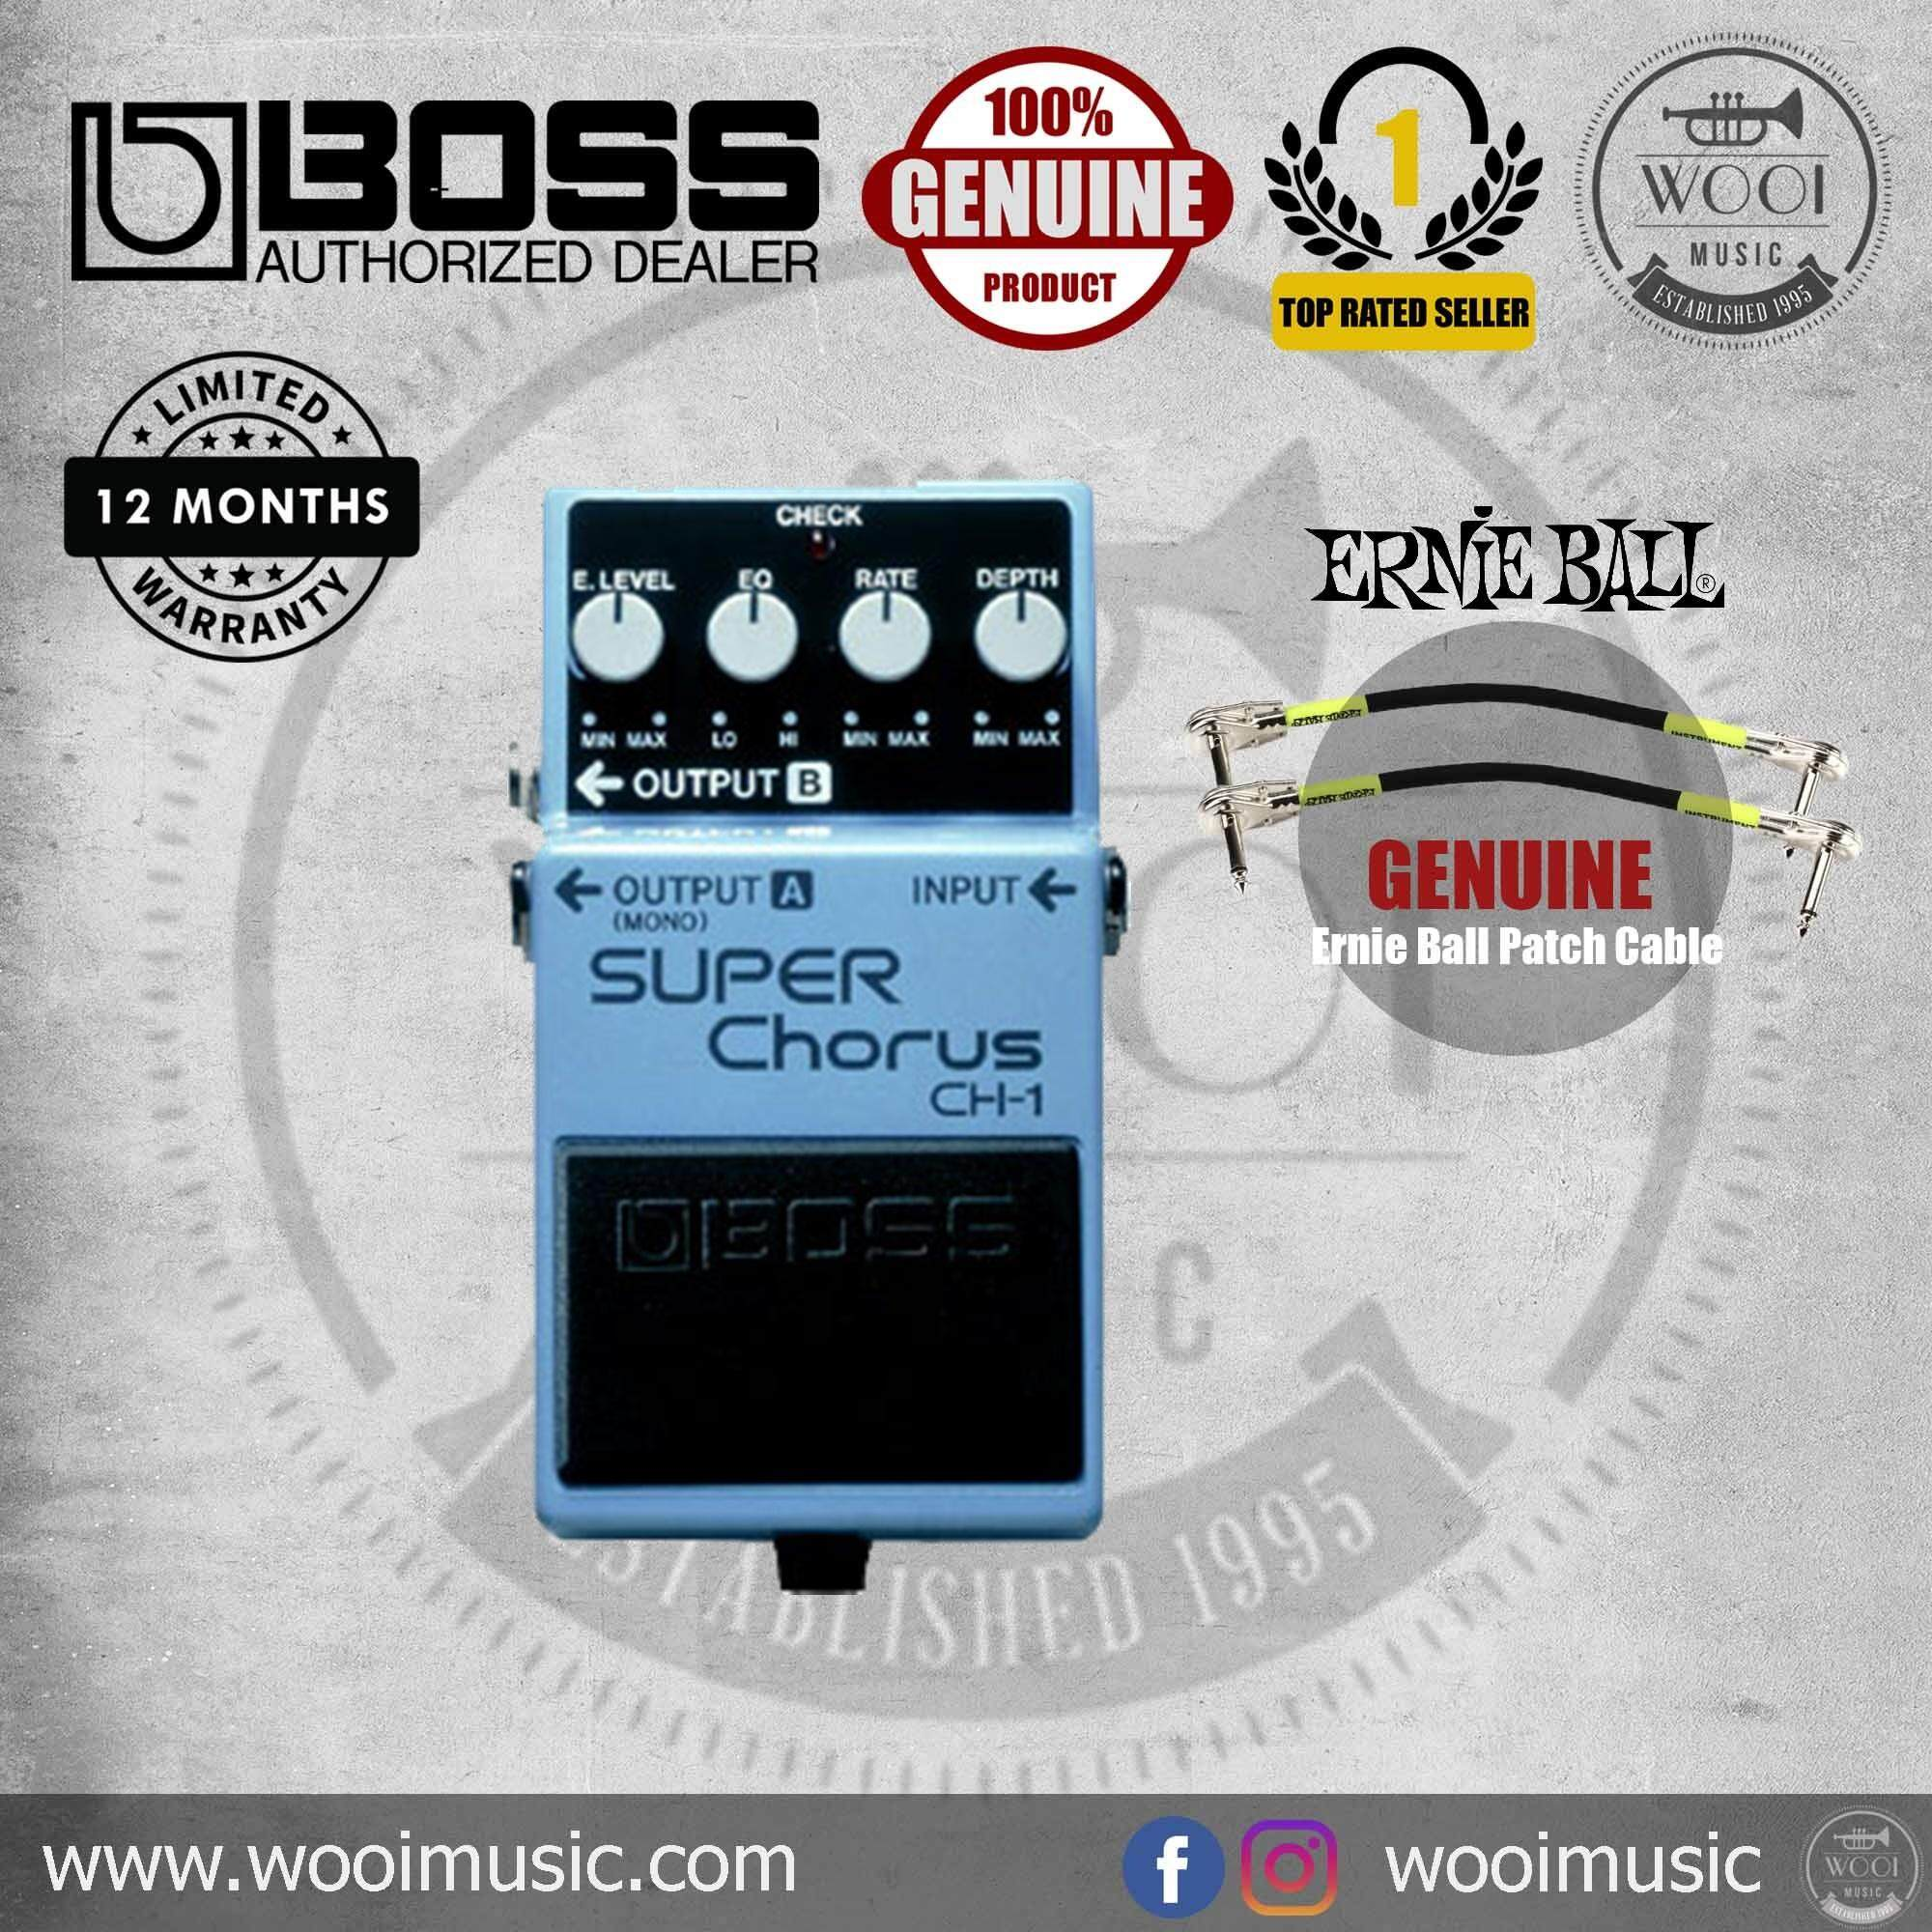 Boss CH-1 Super Chorus Guitar Pedal (FREE ORIGINAL Ernie Ball Patch Cable)